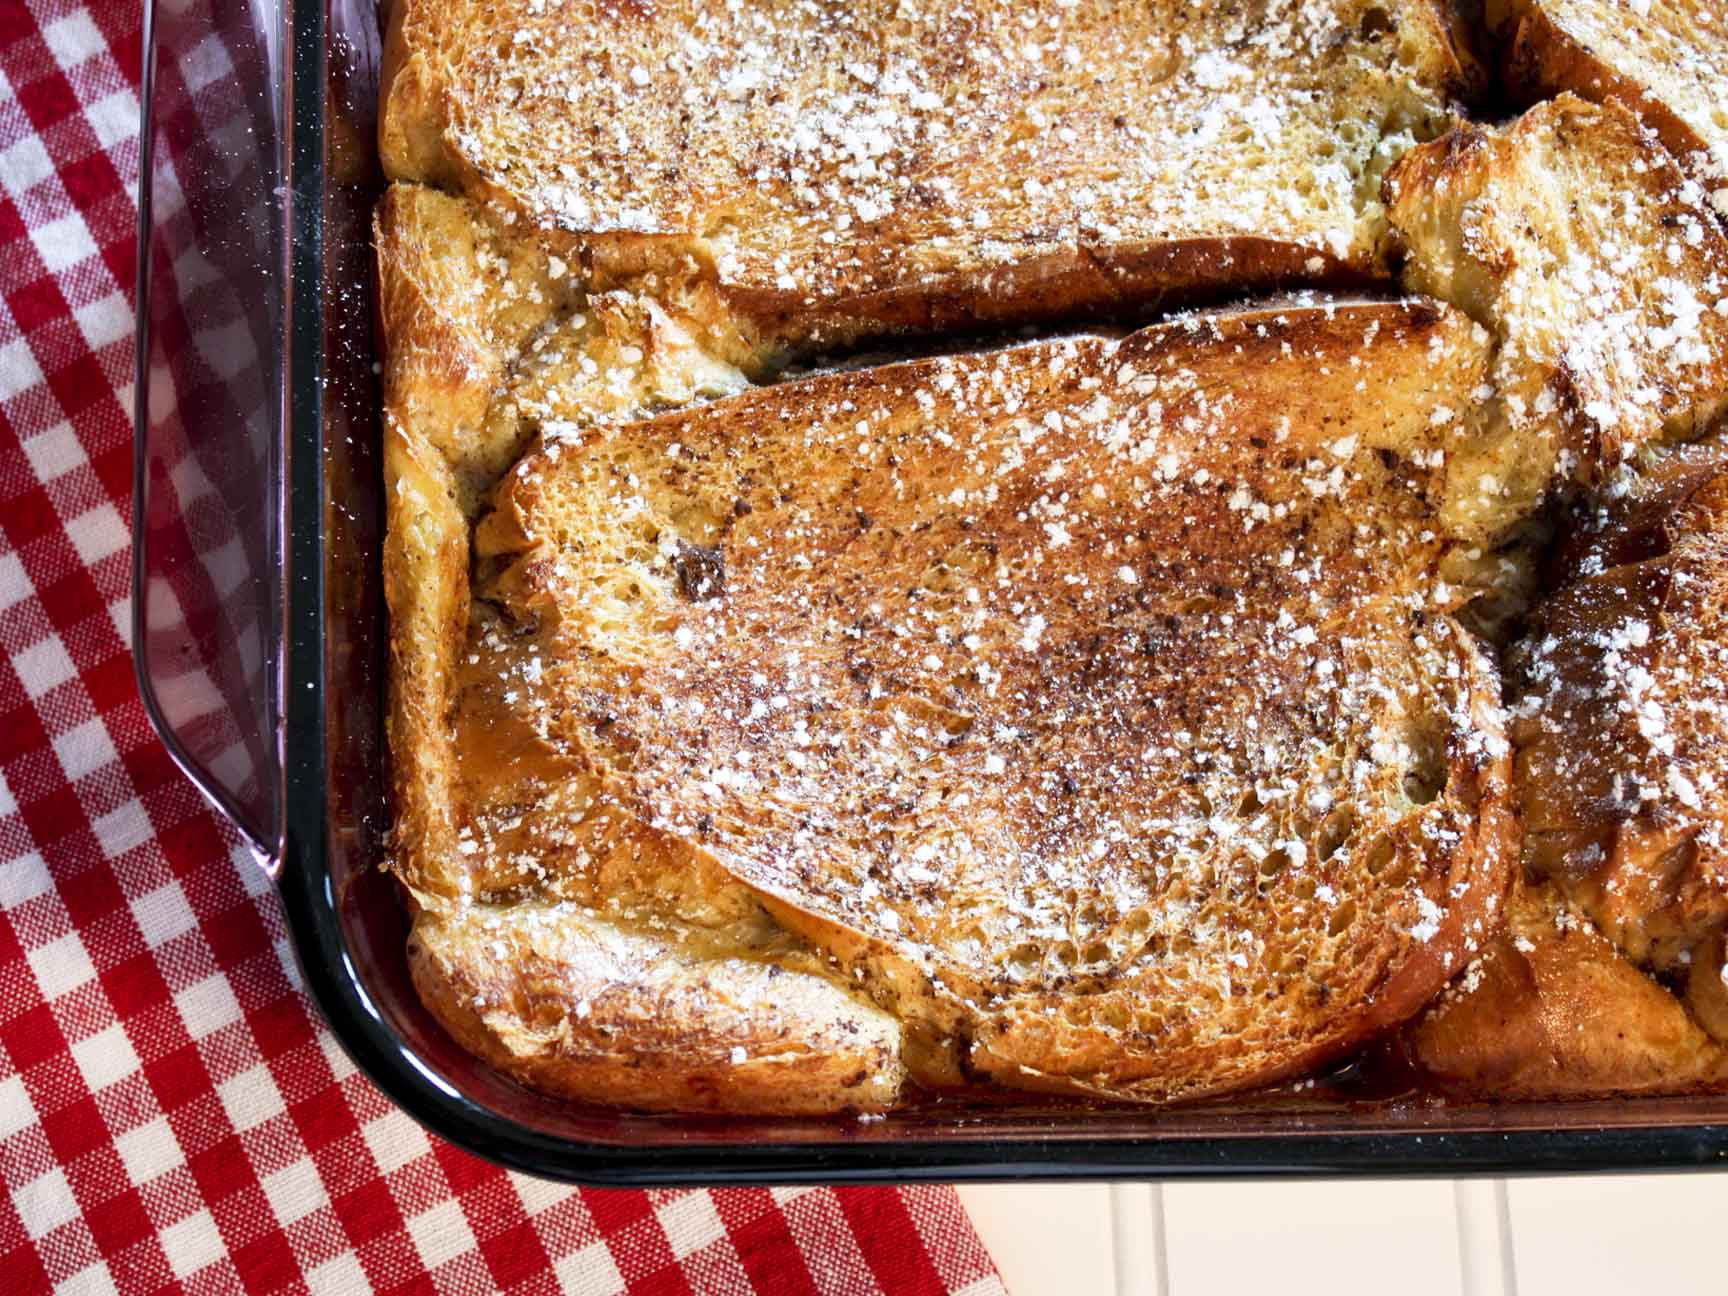 Soft, Challah Bread Seems To Be The Traditional Bread For French Toast  Watch More Like Easy Crispy French Toast Recipes In Good Taste  Deliciousfort